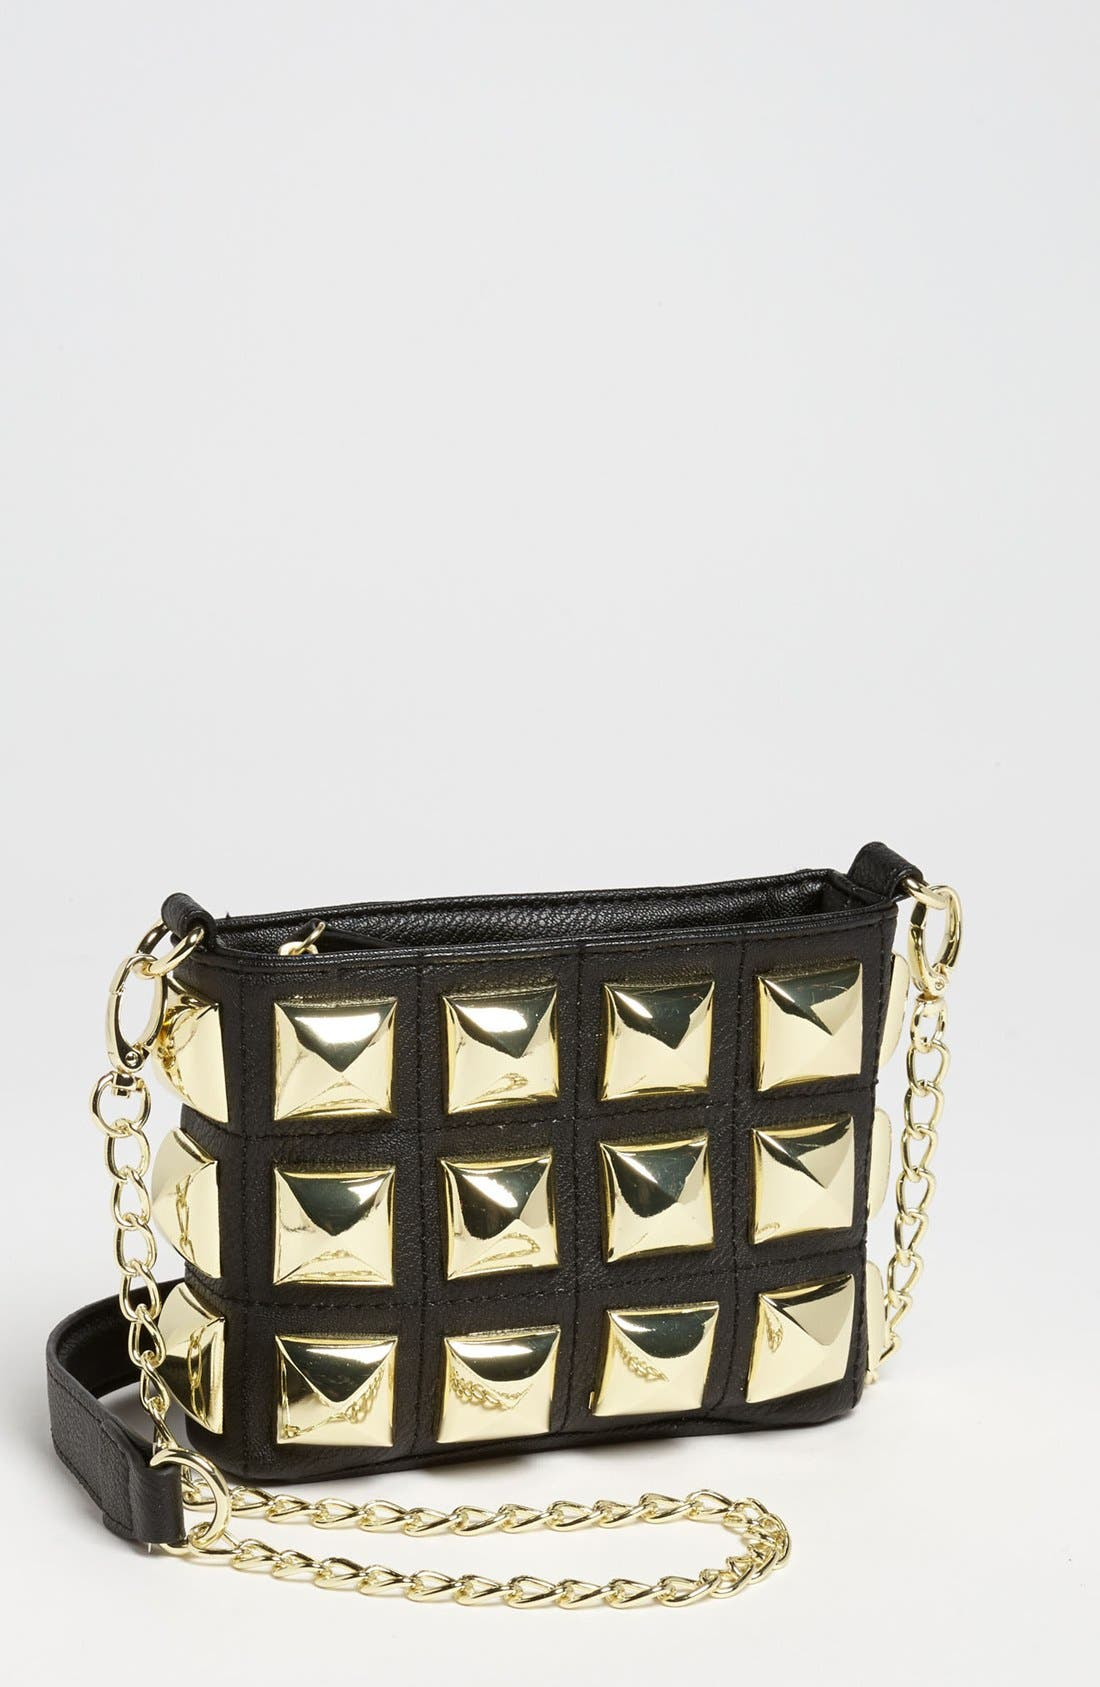 Main Image - Betsey Johnson 'Stud Muffin' Crossbody Bag